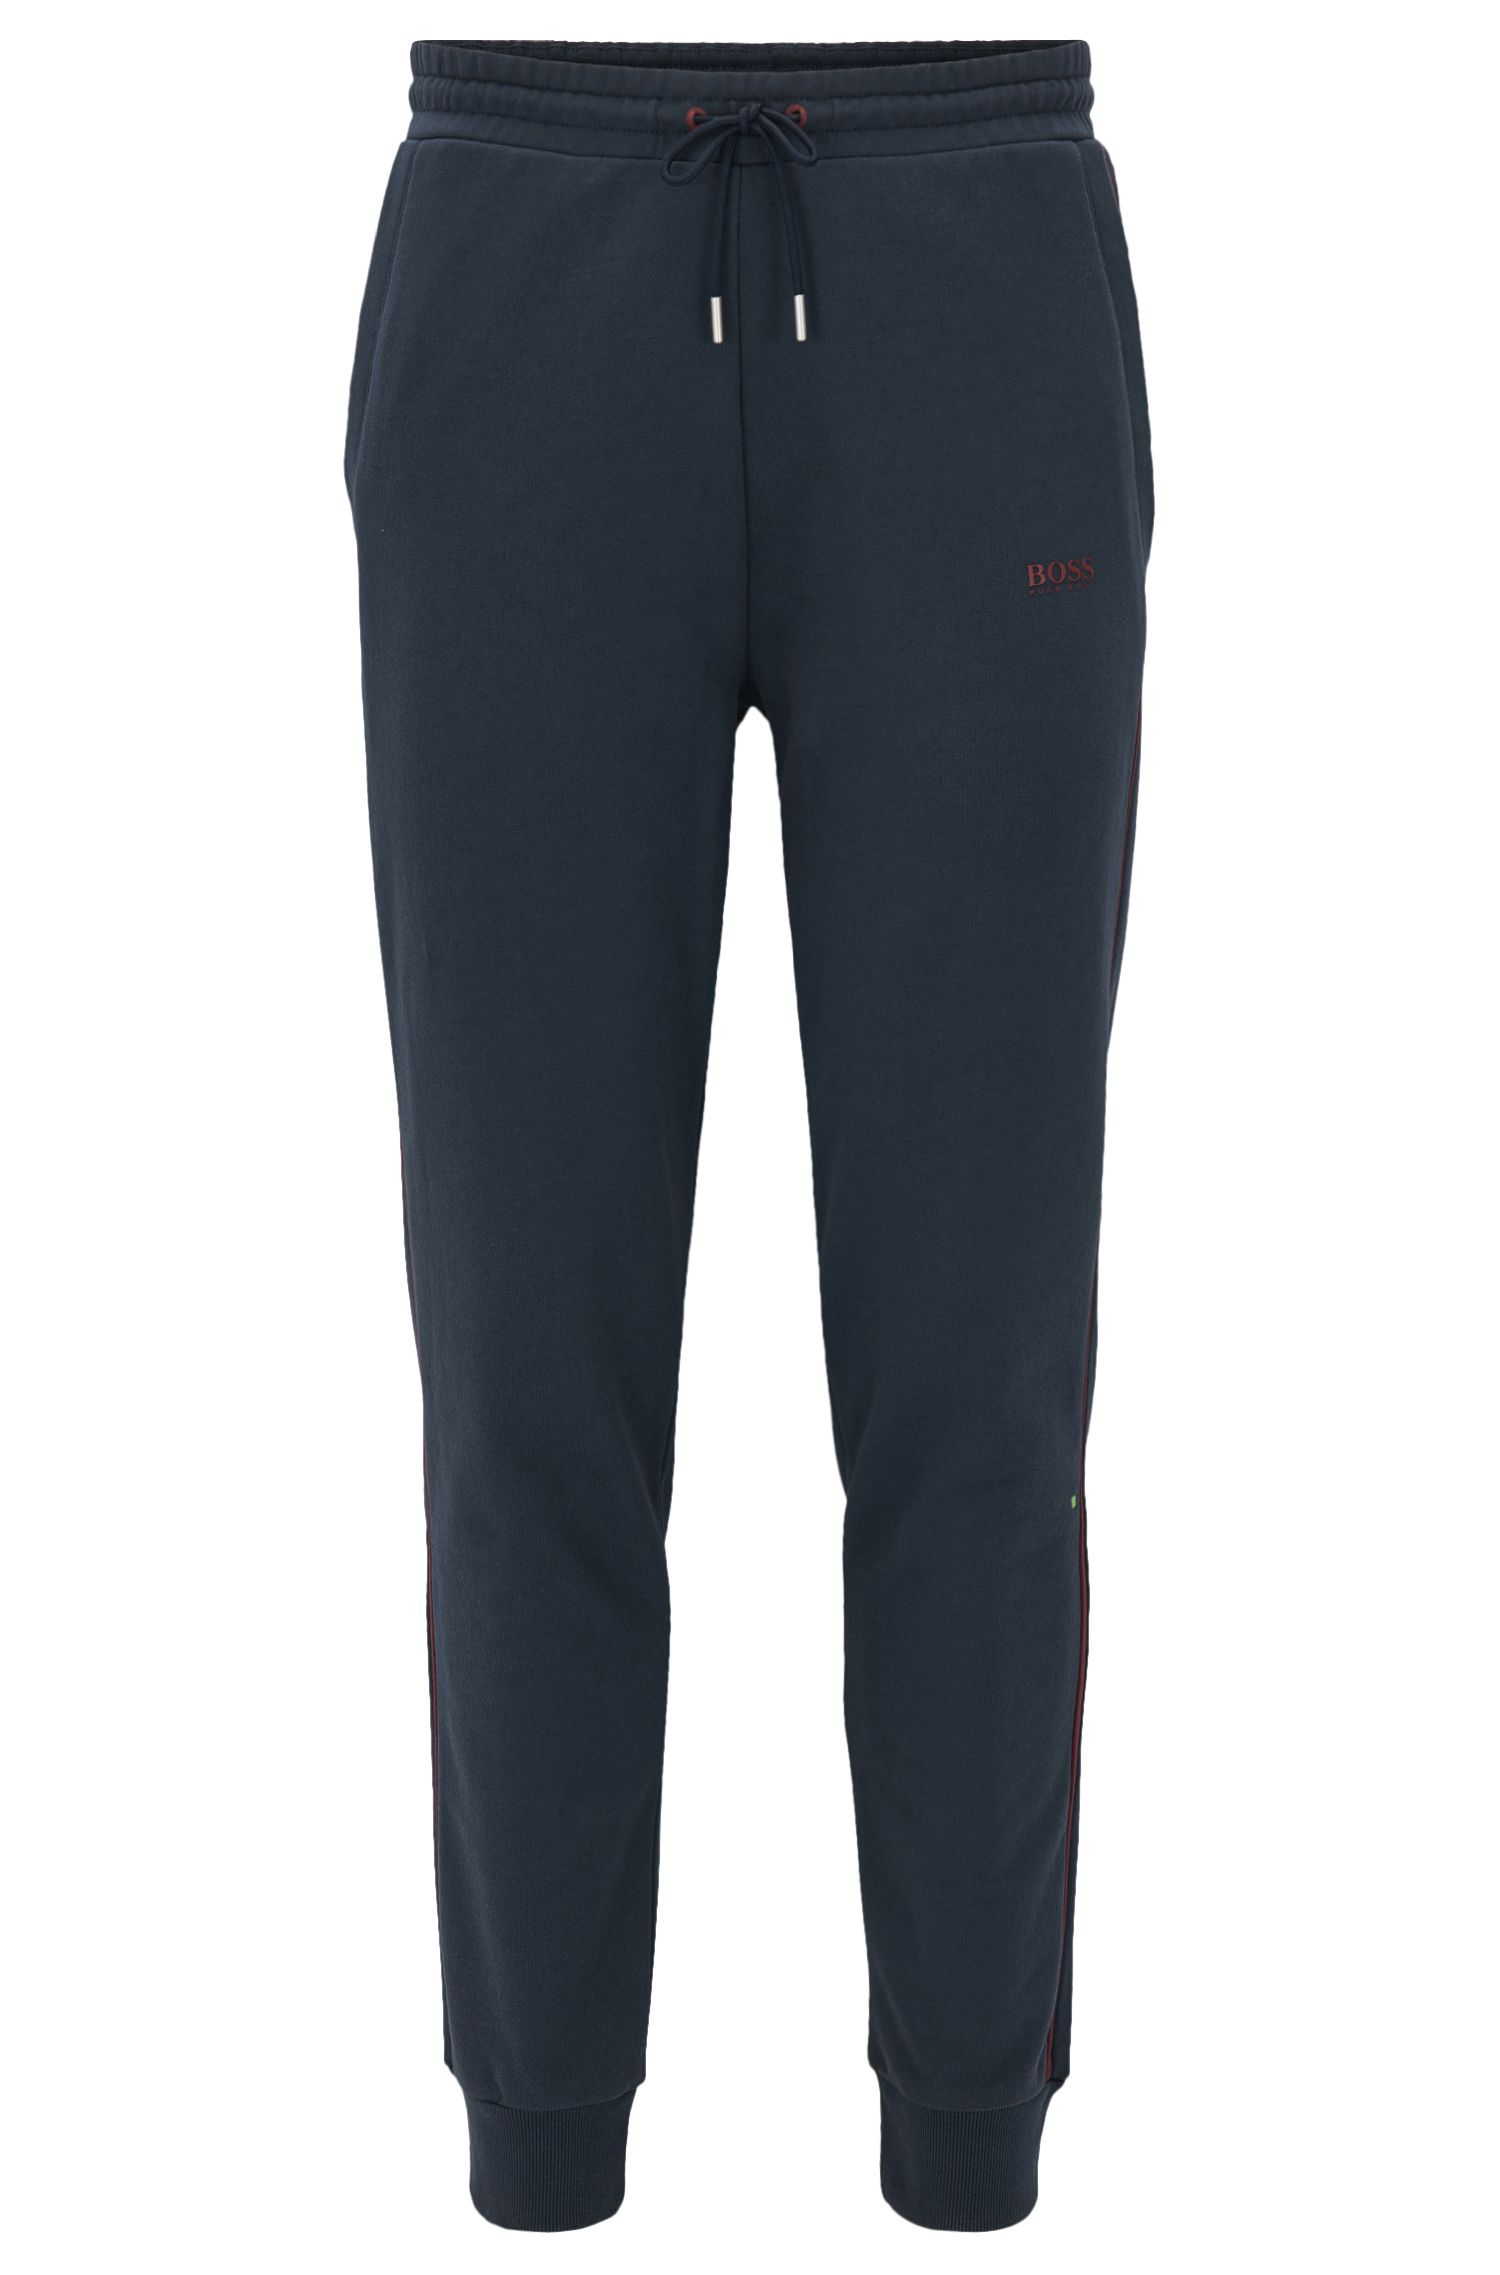 Cuffed jogging bottoms in French terry